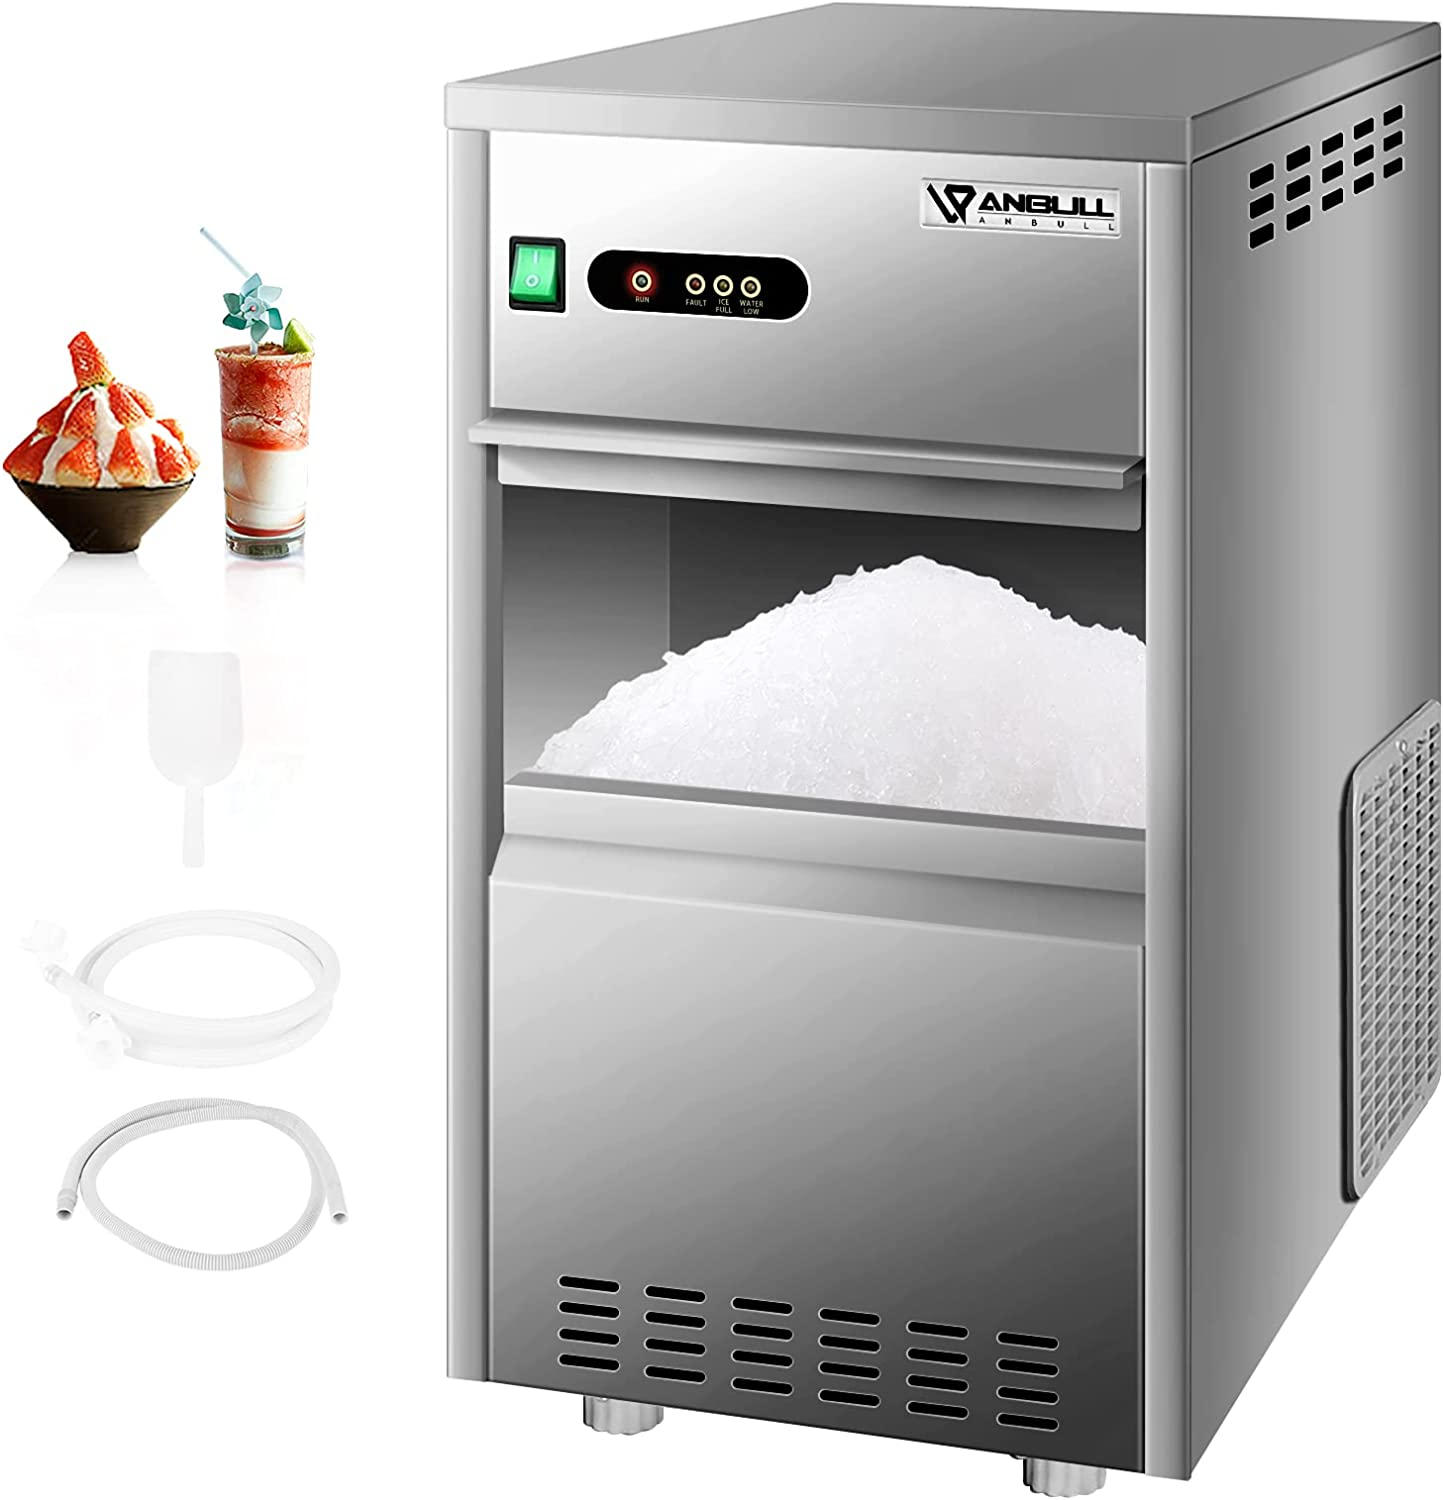 Anbull 110V Commercial Snowflake Crushed Ice Maker, 55LBS/24H, Food Grade Stainless Steel, ETL Approved, Easy Operating & Freestanding Ice Machine, Ideal for Restaurant/Seafood Store/Butcher Shop